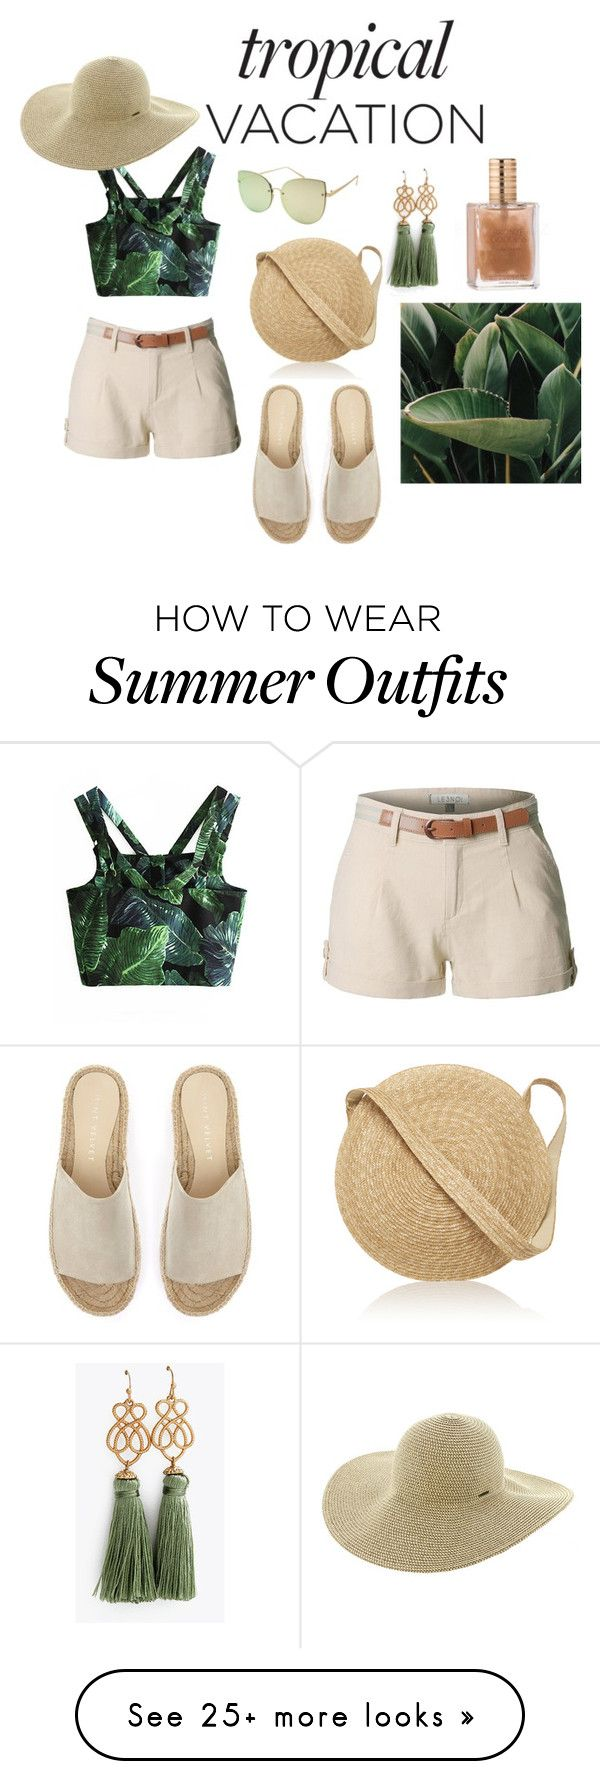 """summer outfit"" by trinh131096 on Polyvore featuring LE3NO, Mint Velve..."